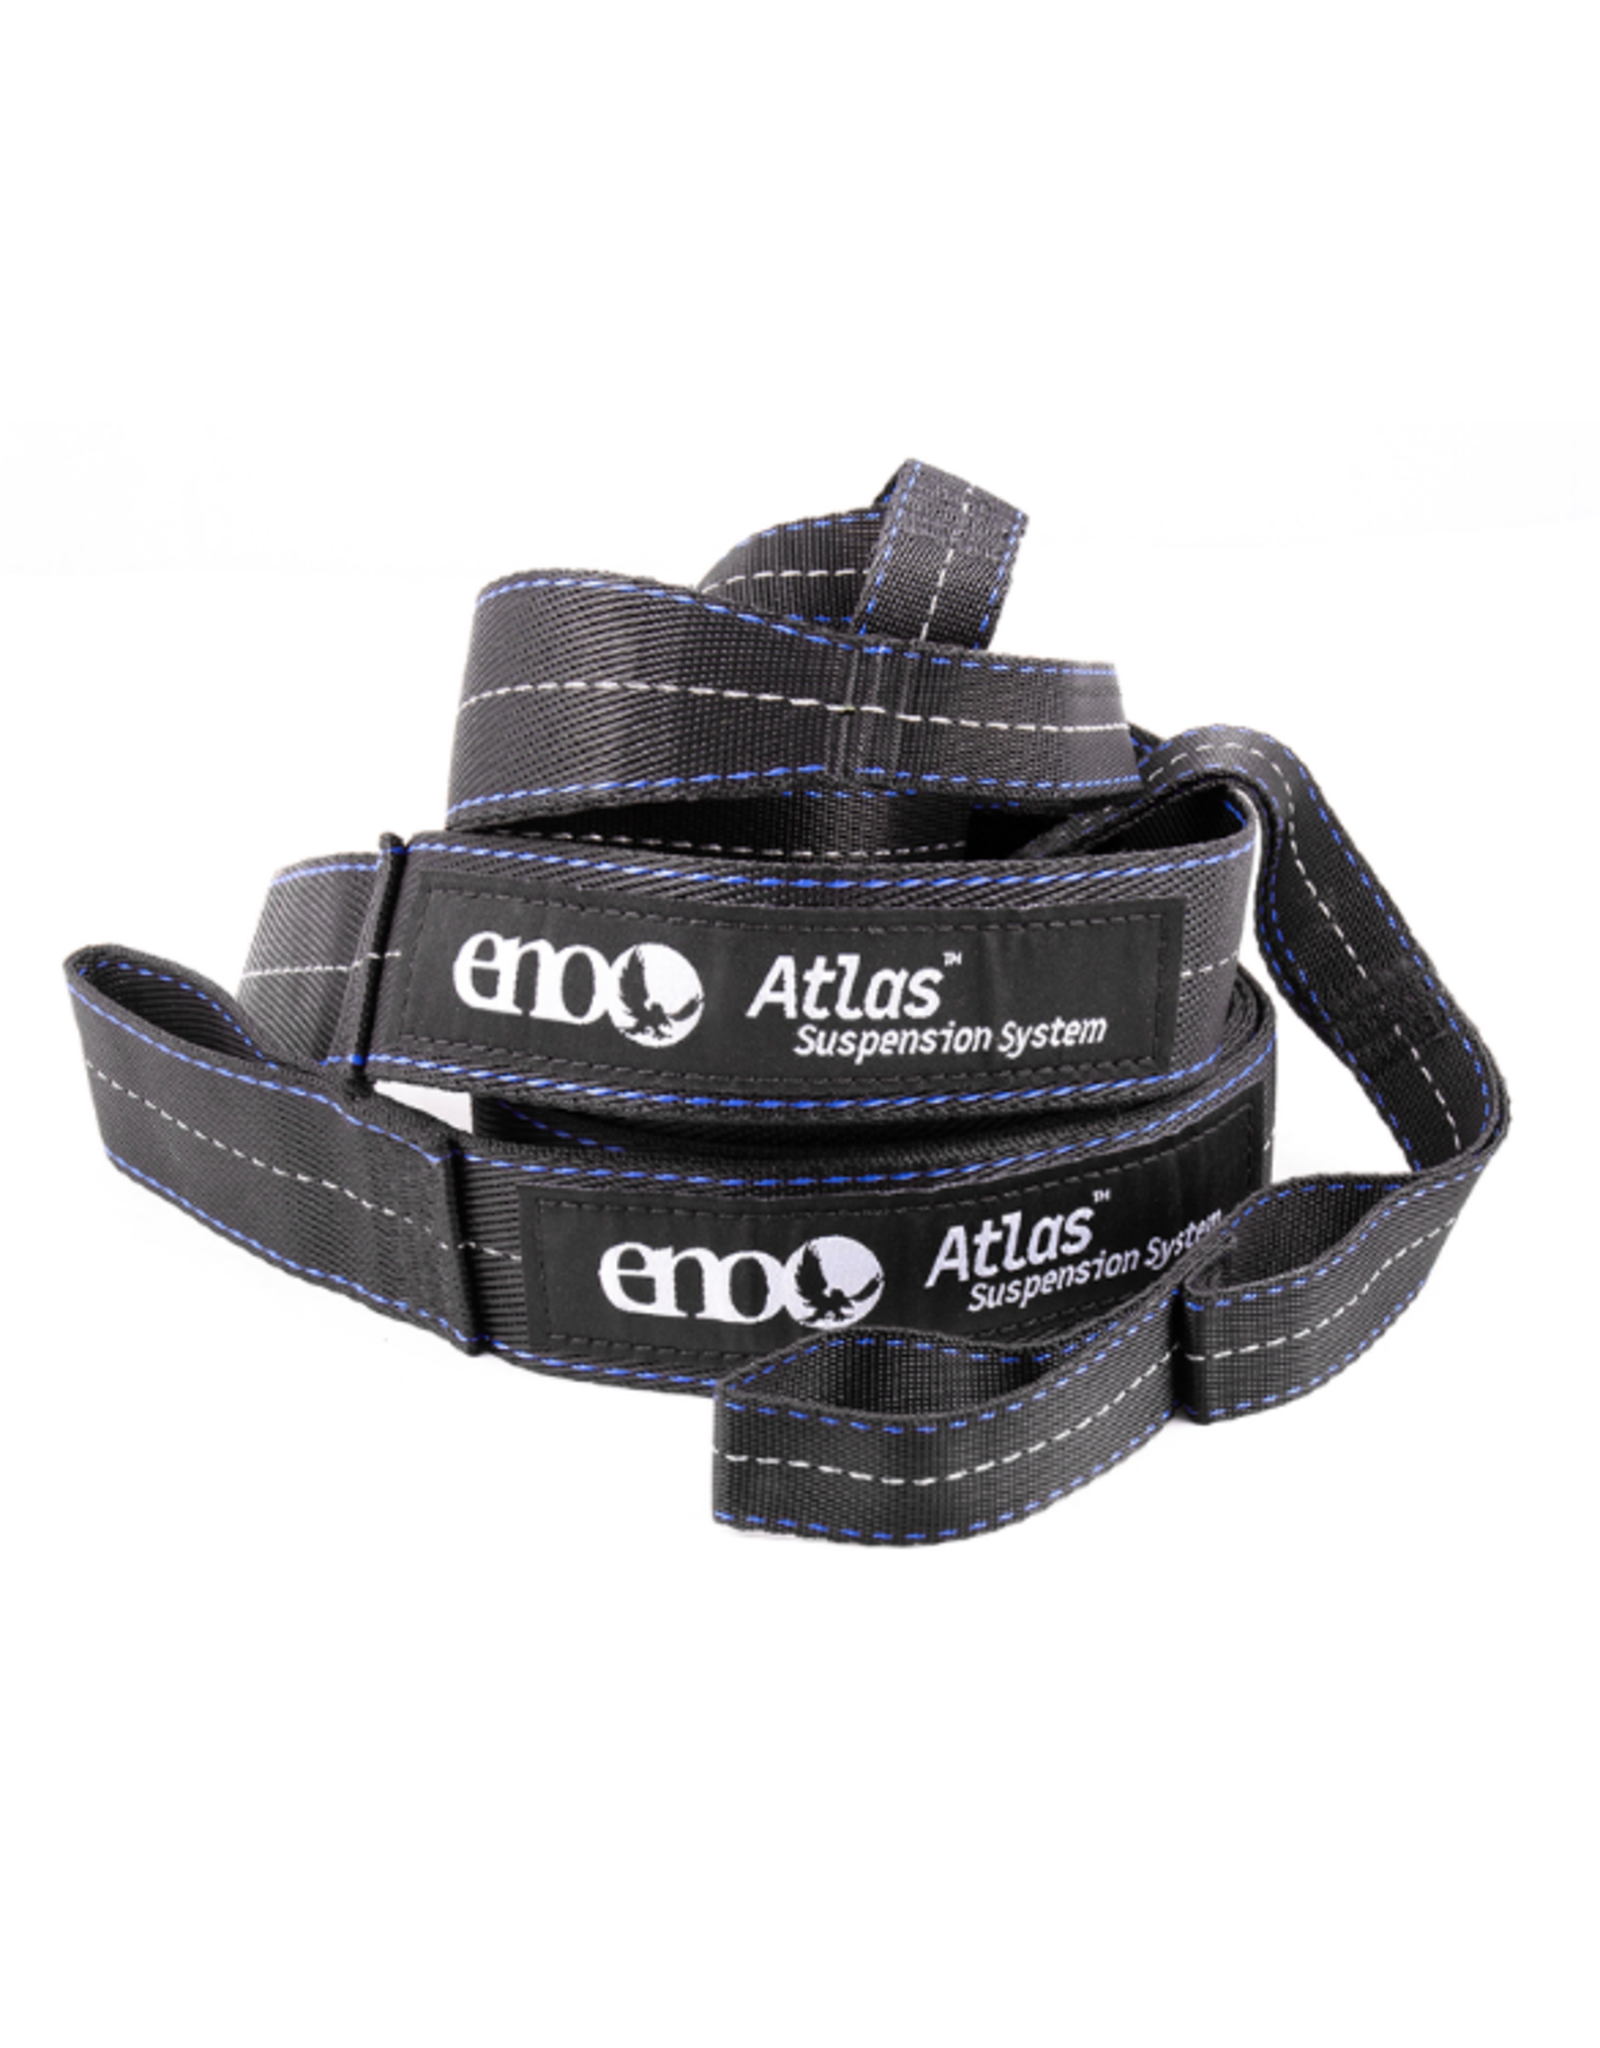 Eagles Nest Outfitters Eno Hammock Atlas Suspension Straps